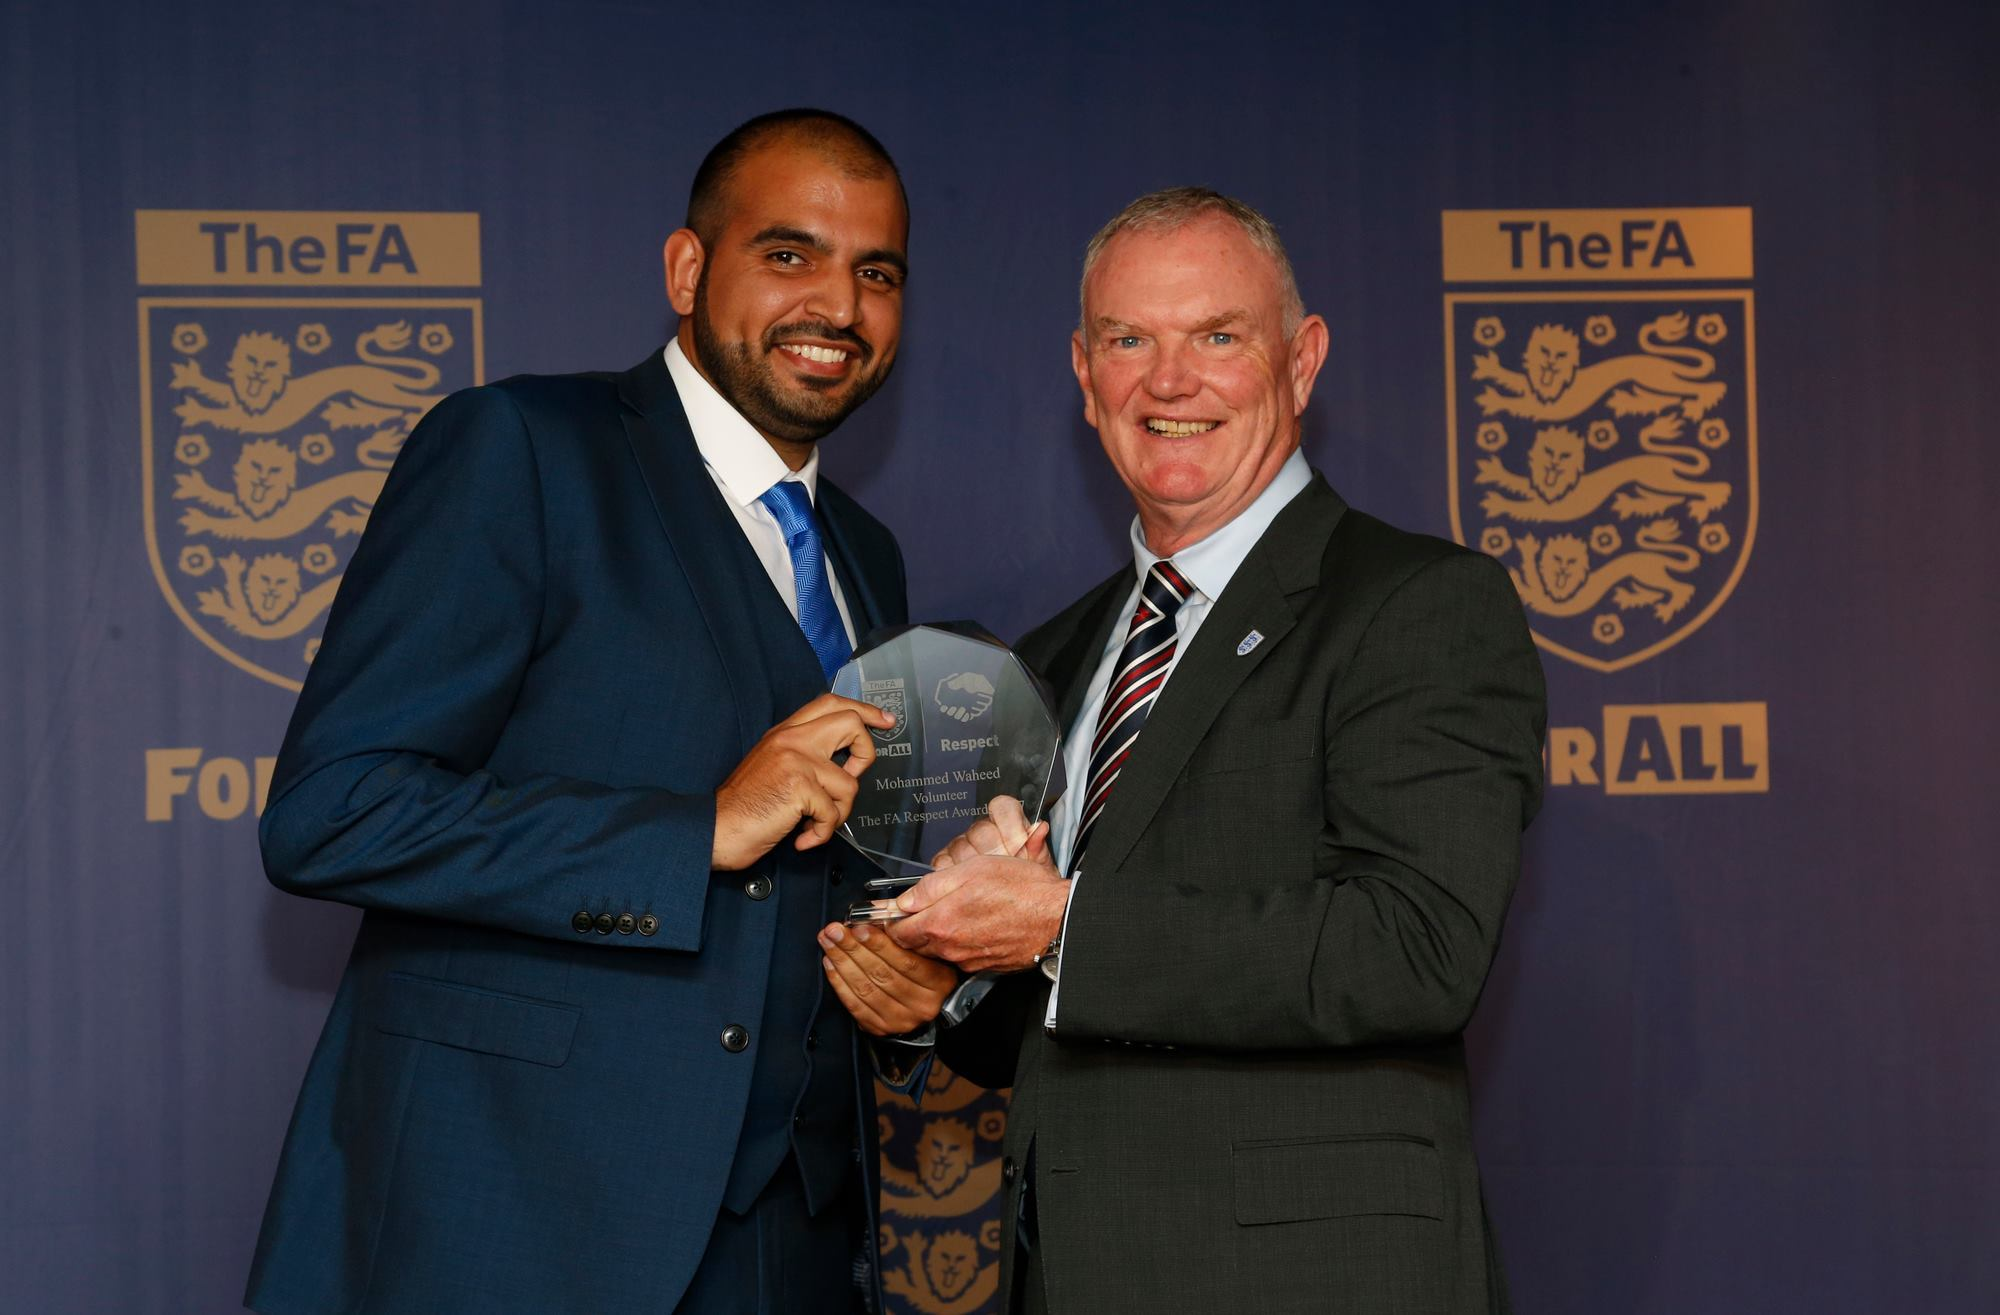 Mohameed Waheed receiving his award from FA chairman Greg Clarke